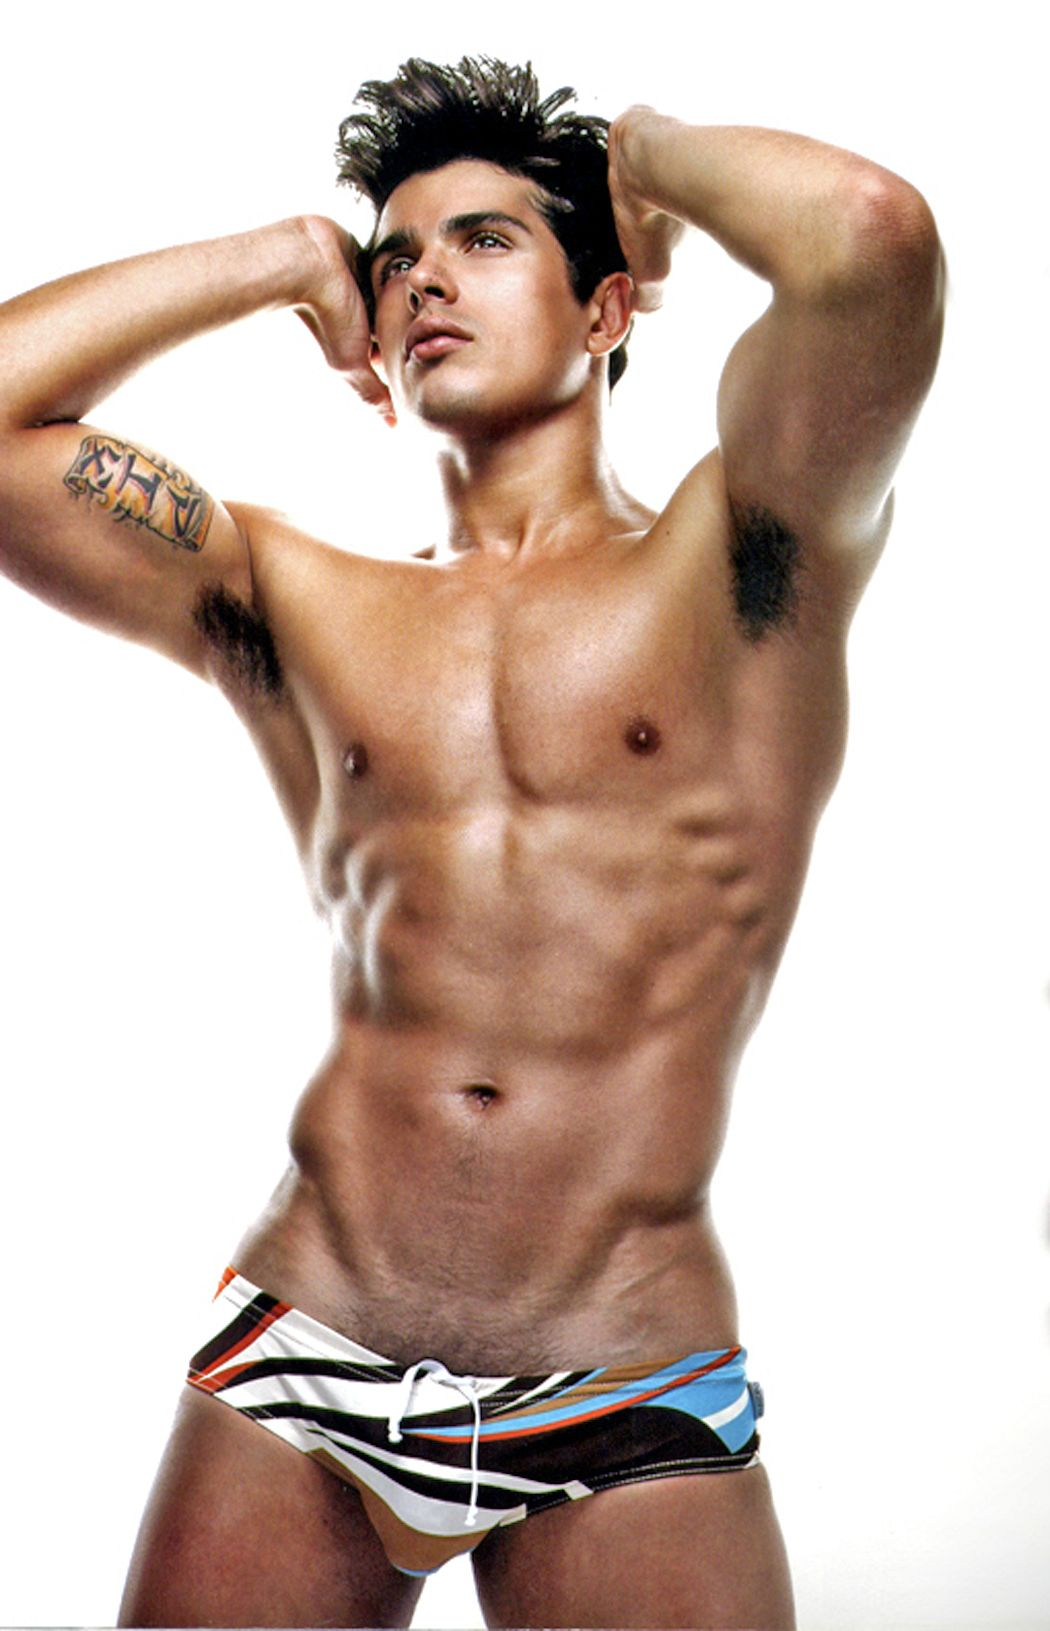 Edilson Nascimento - Page 8 - Male Fashion Models - Bellazon-9241